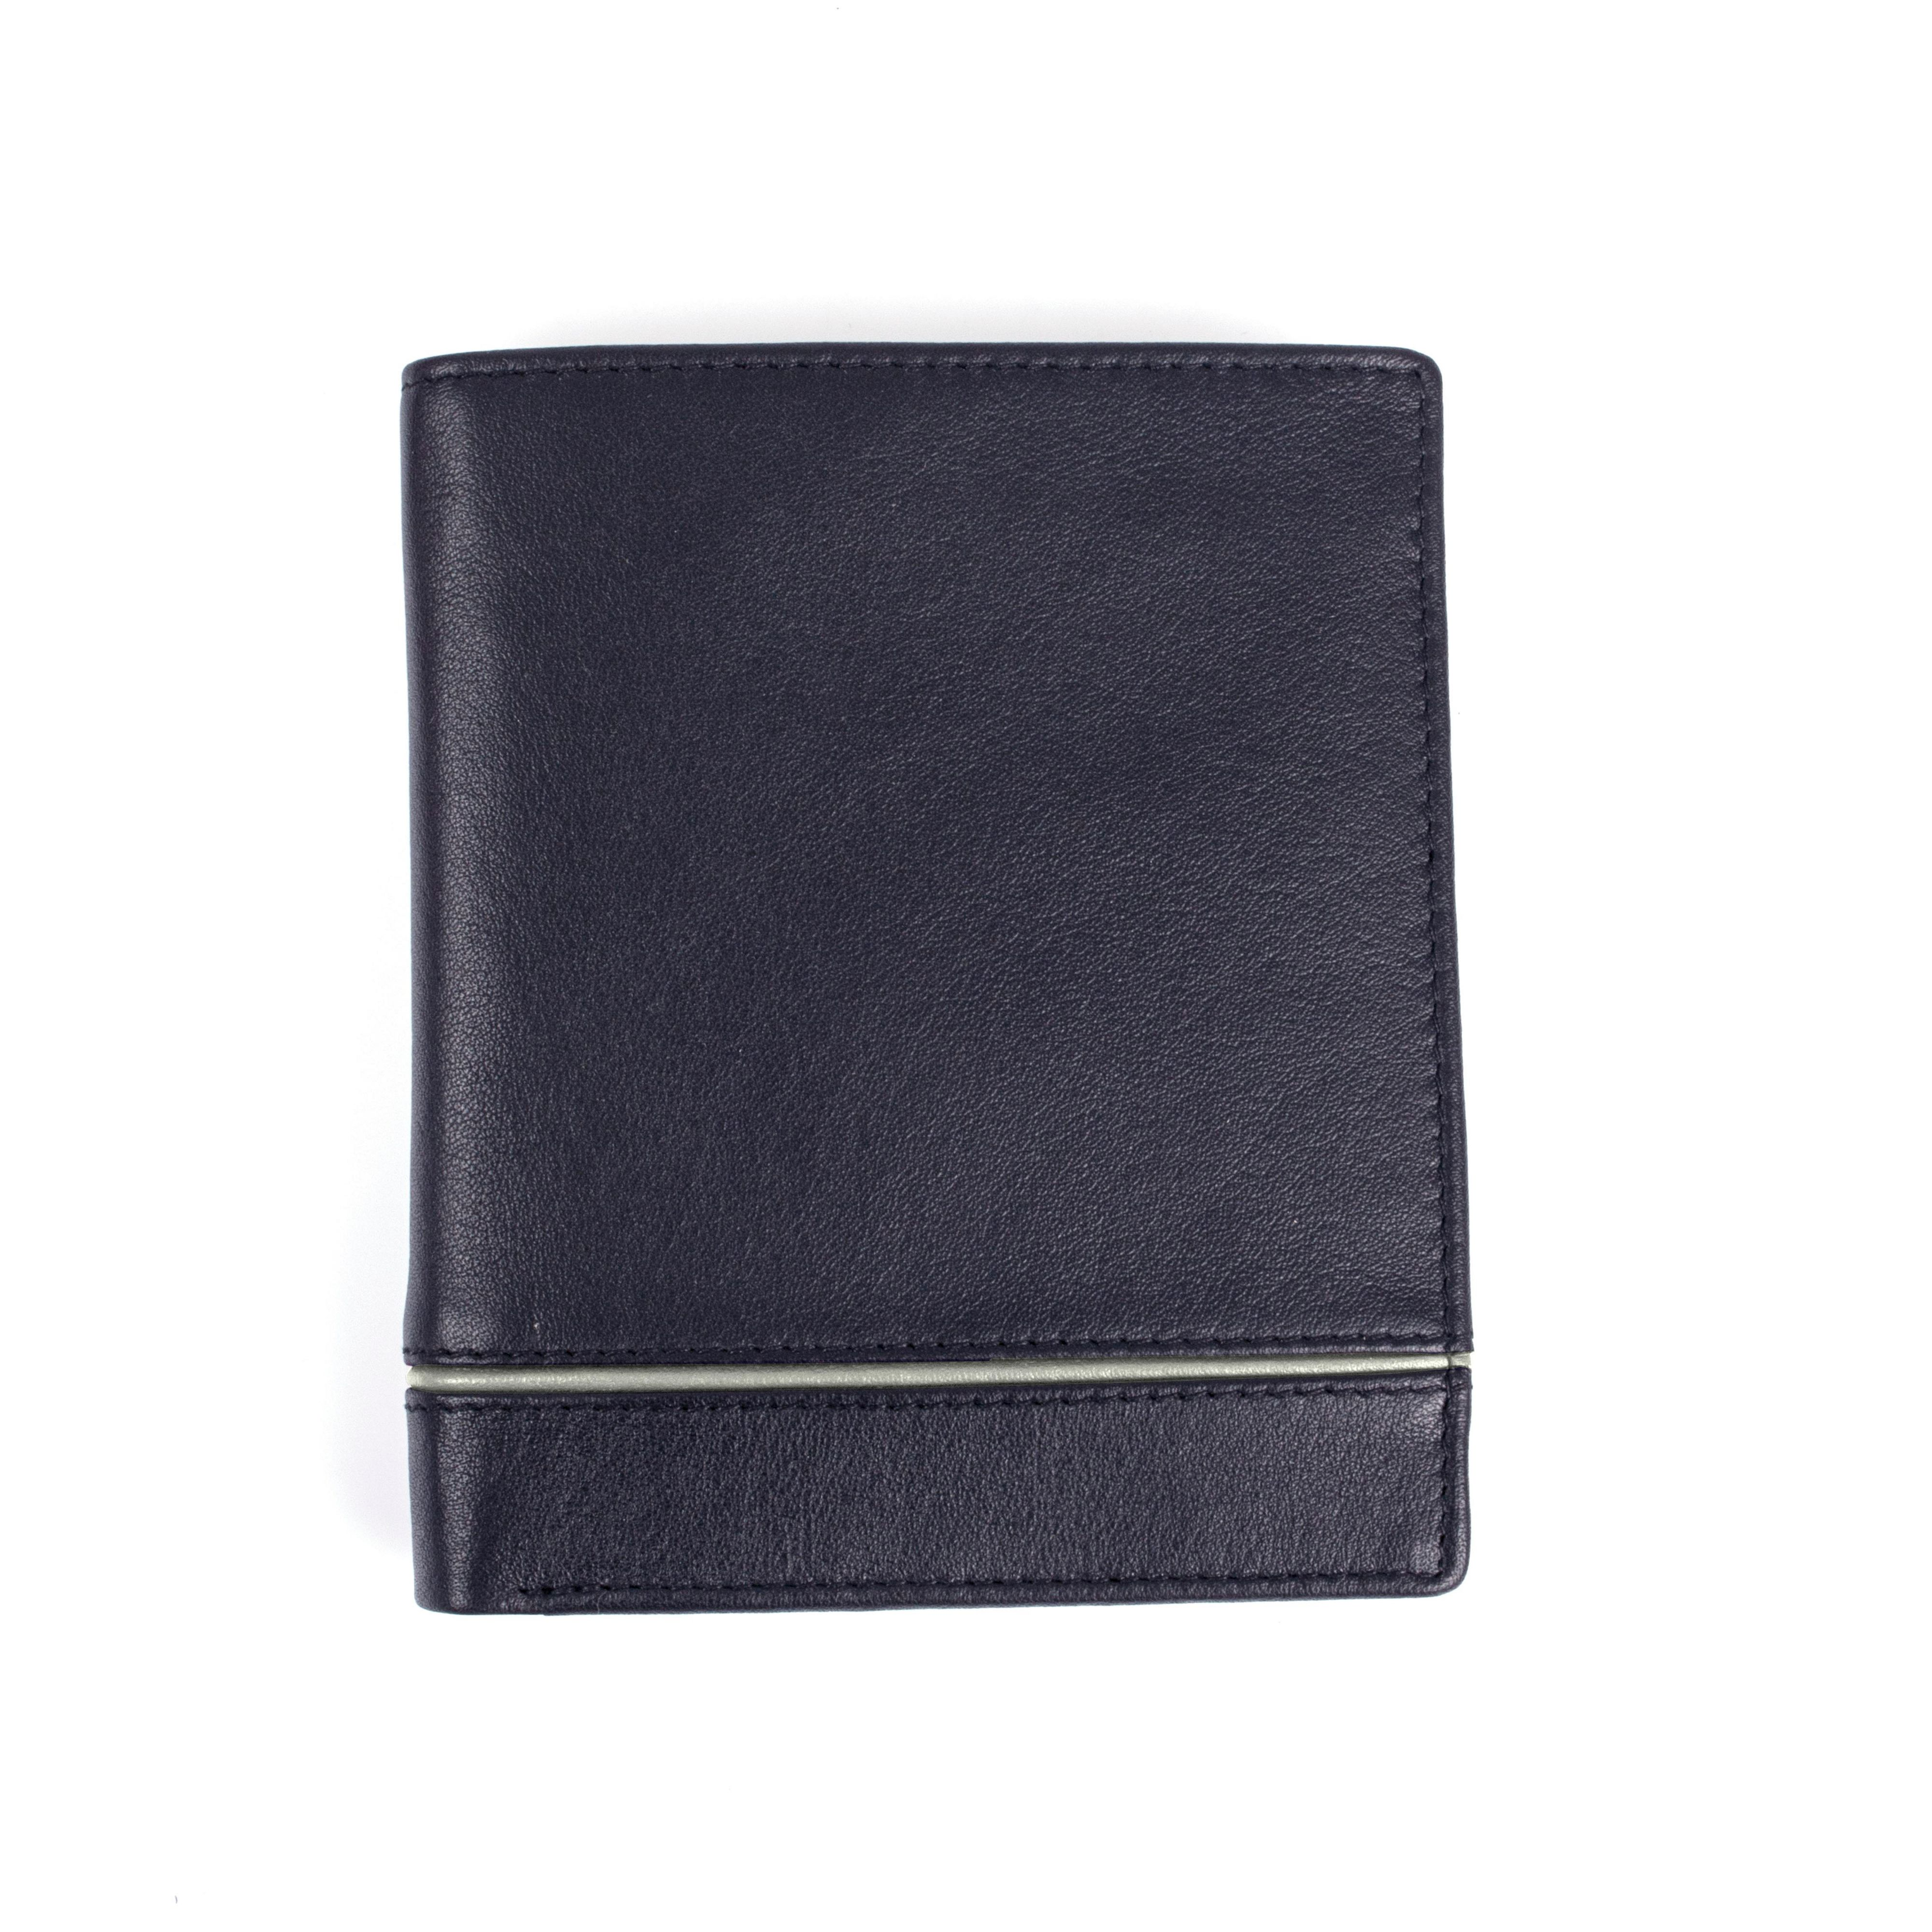 Dents Dents Mens leather RFID protection wallet, Navy